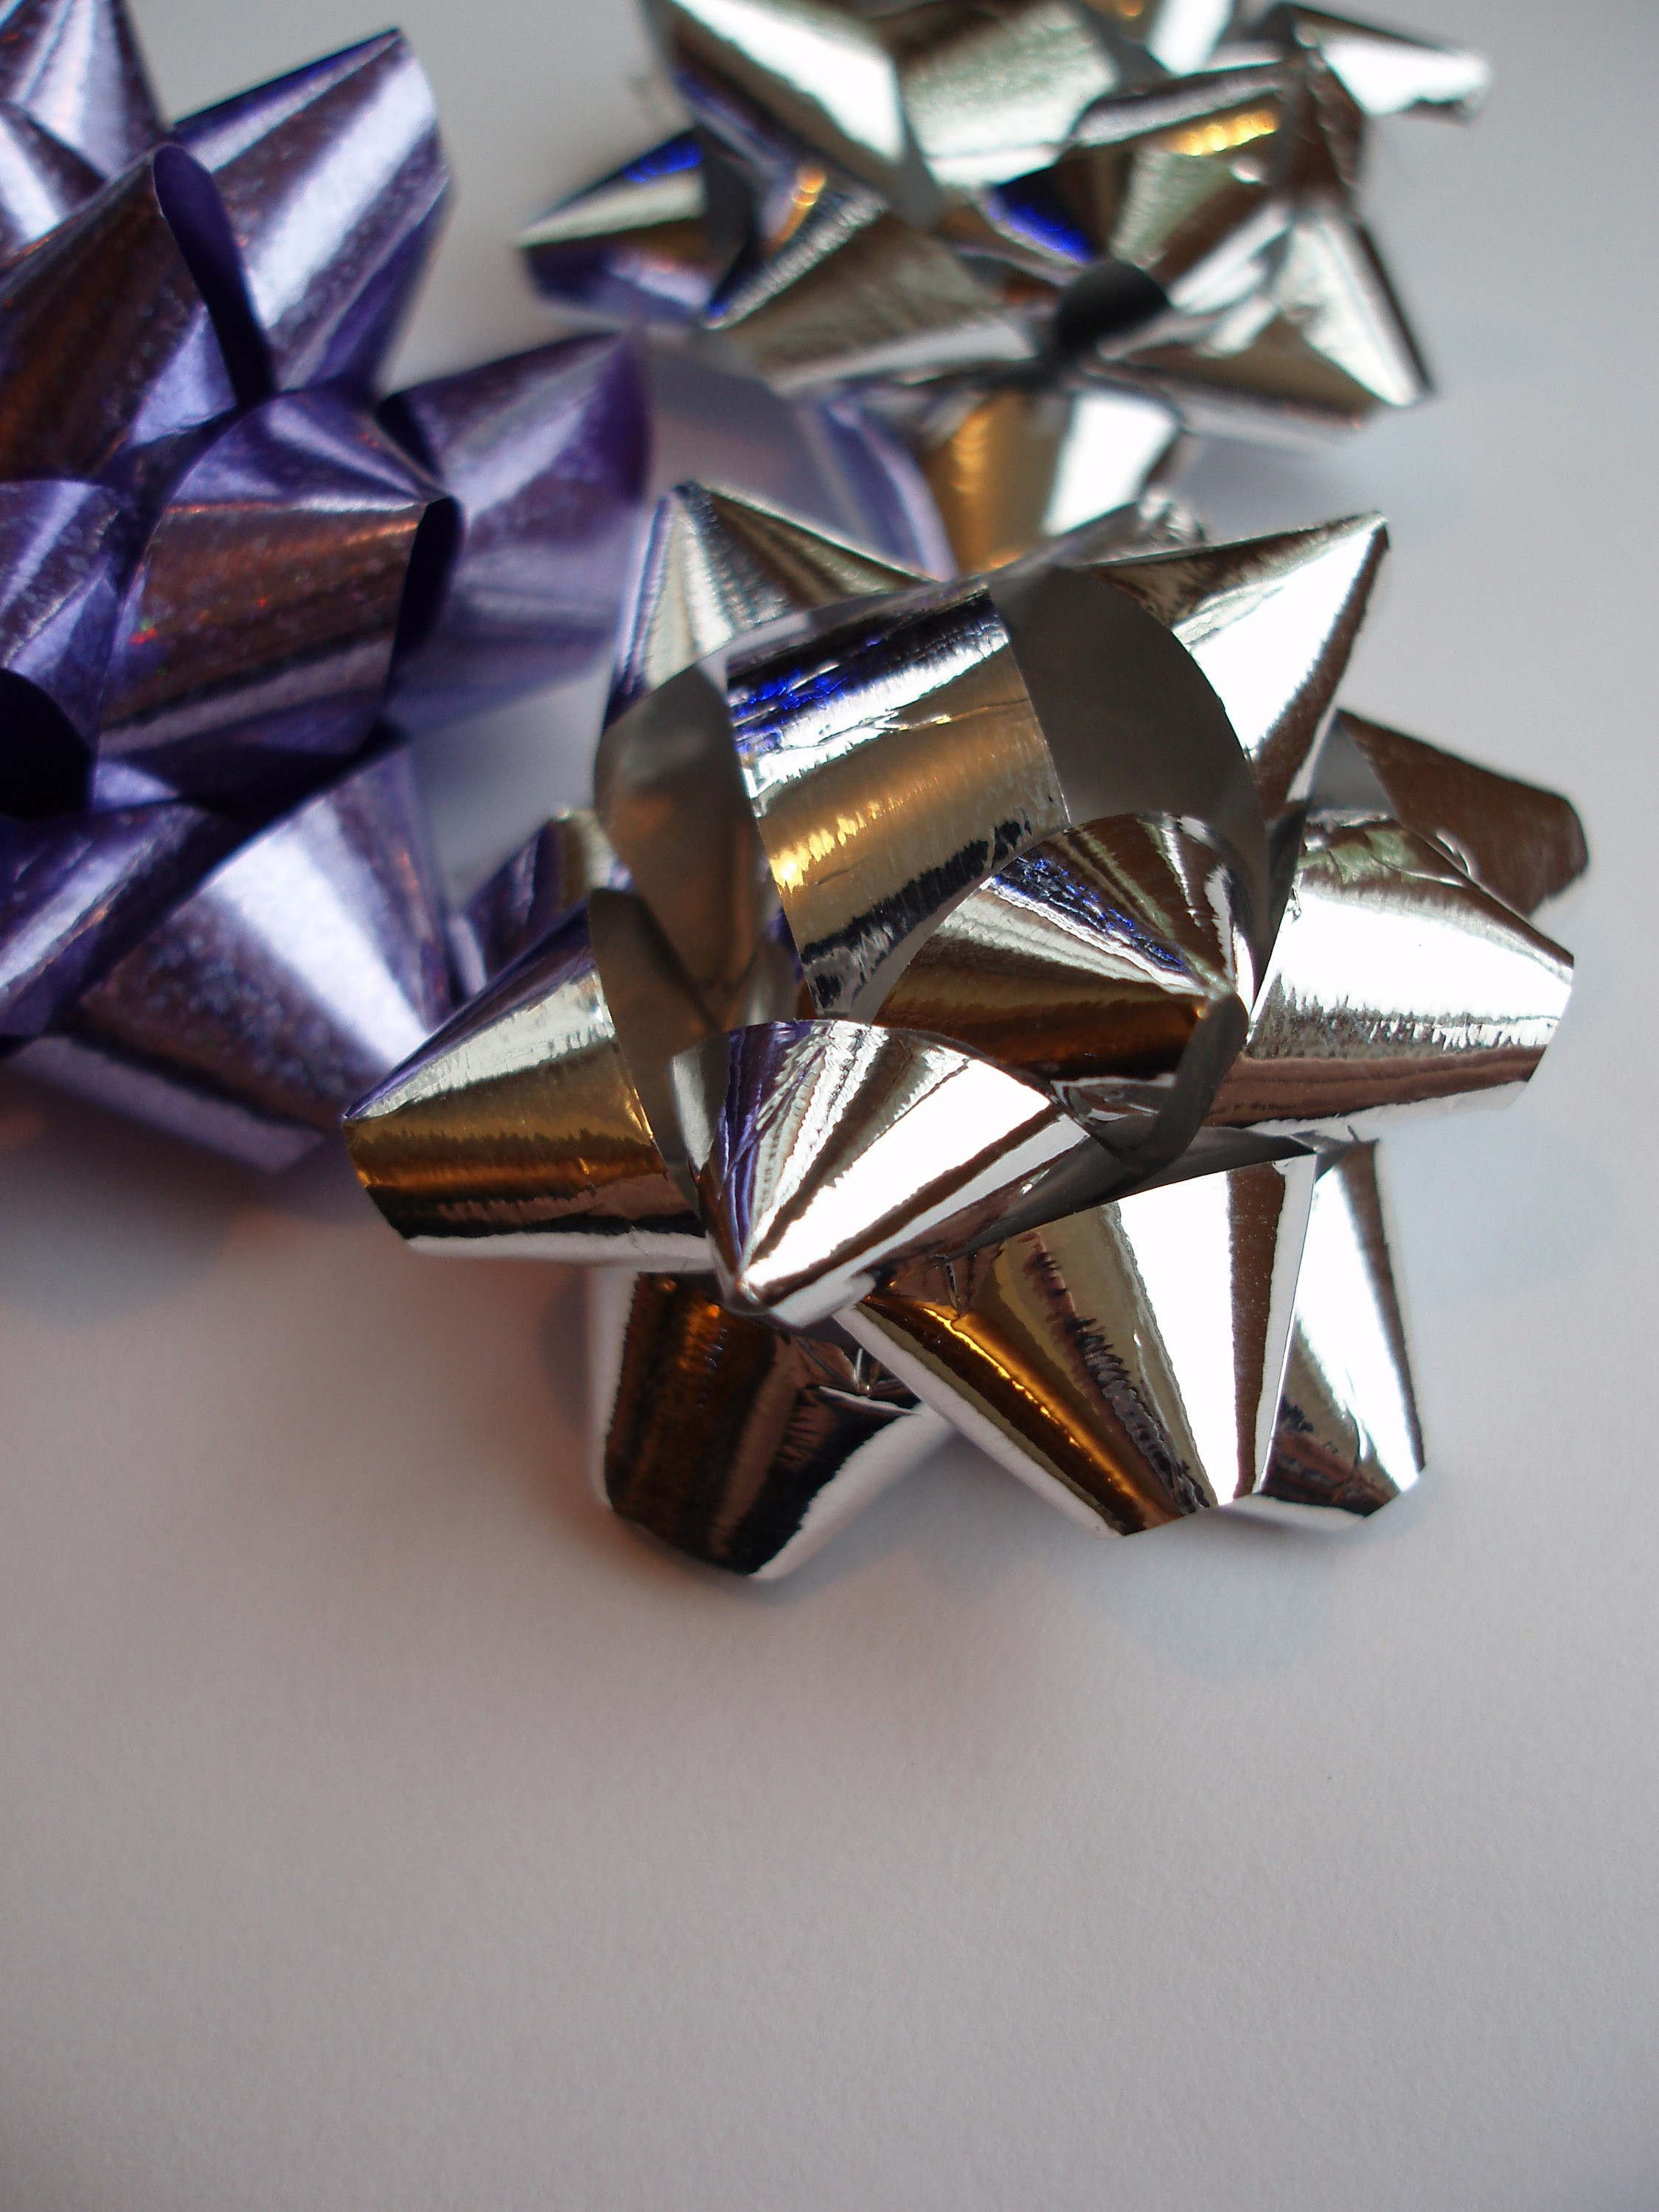 a decorative background image of reflective metalic wrapping bows